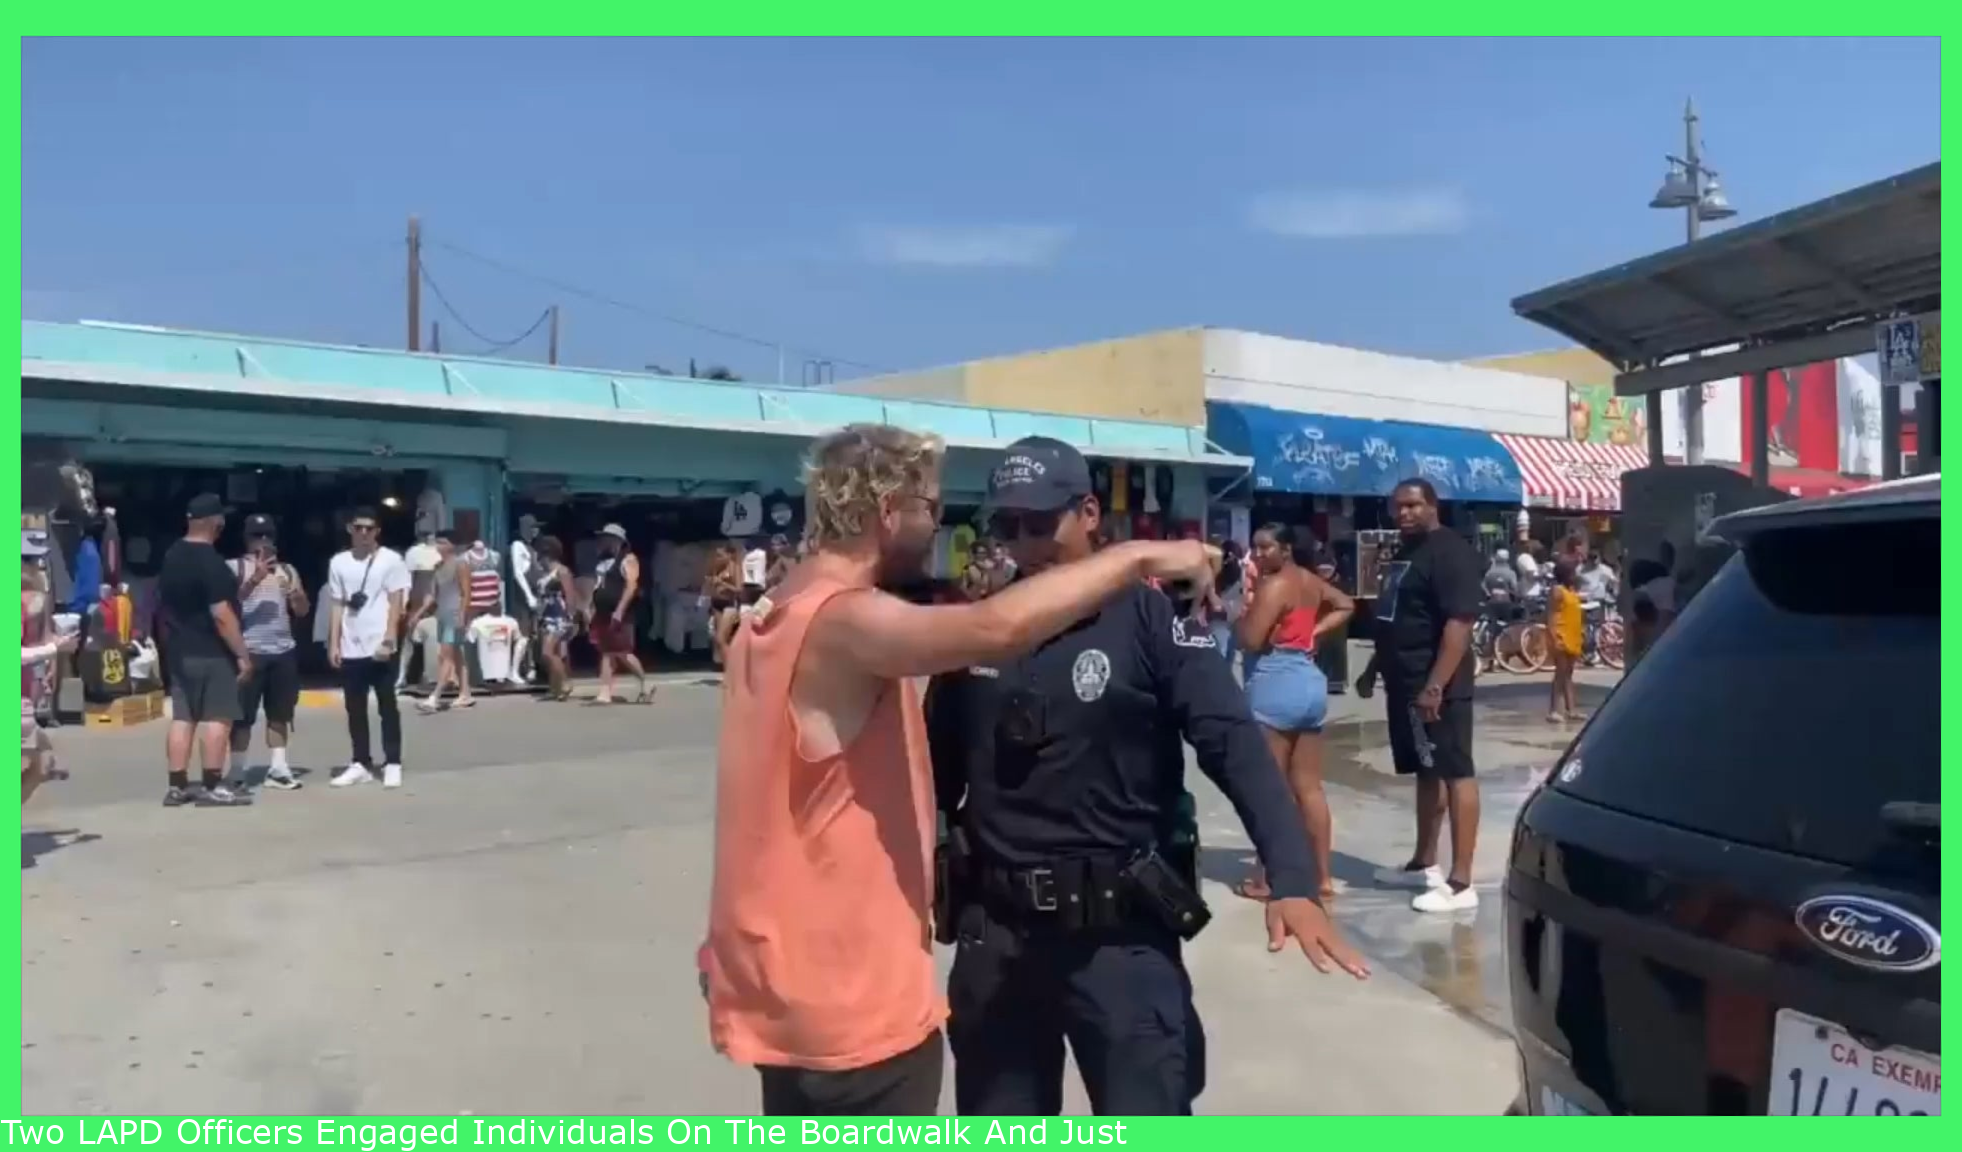 """Two LAPD Officers Engaged People On The Boardwalk And One Man Forced Them To Back down stating """" Police Don't Own Public Space"""""""